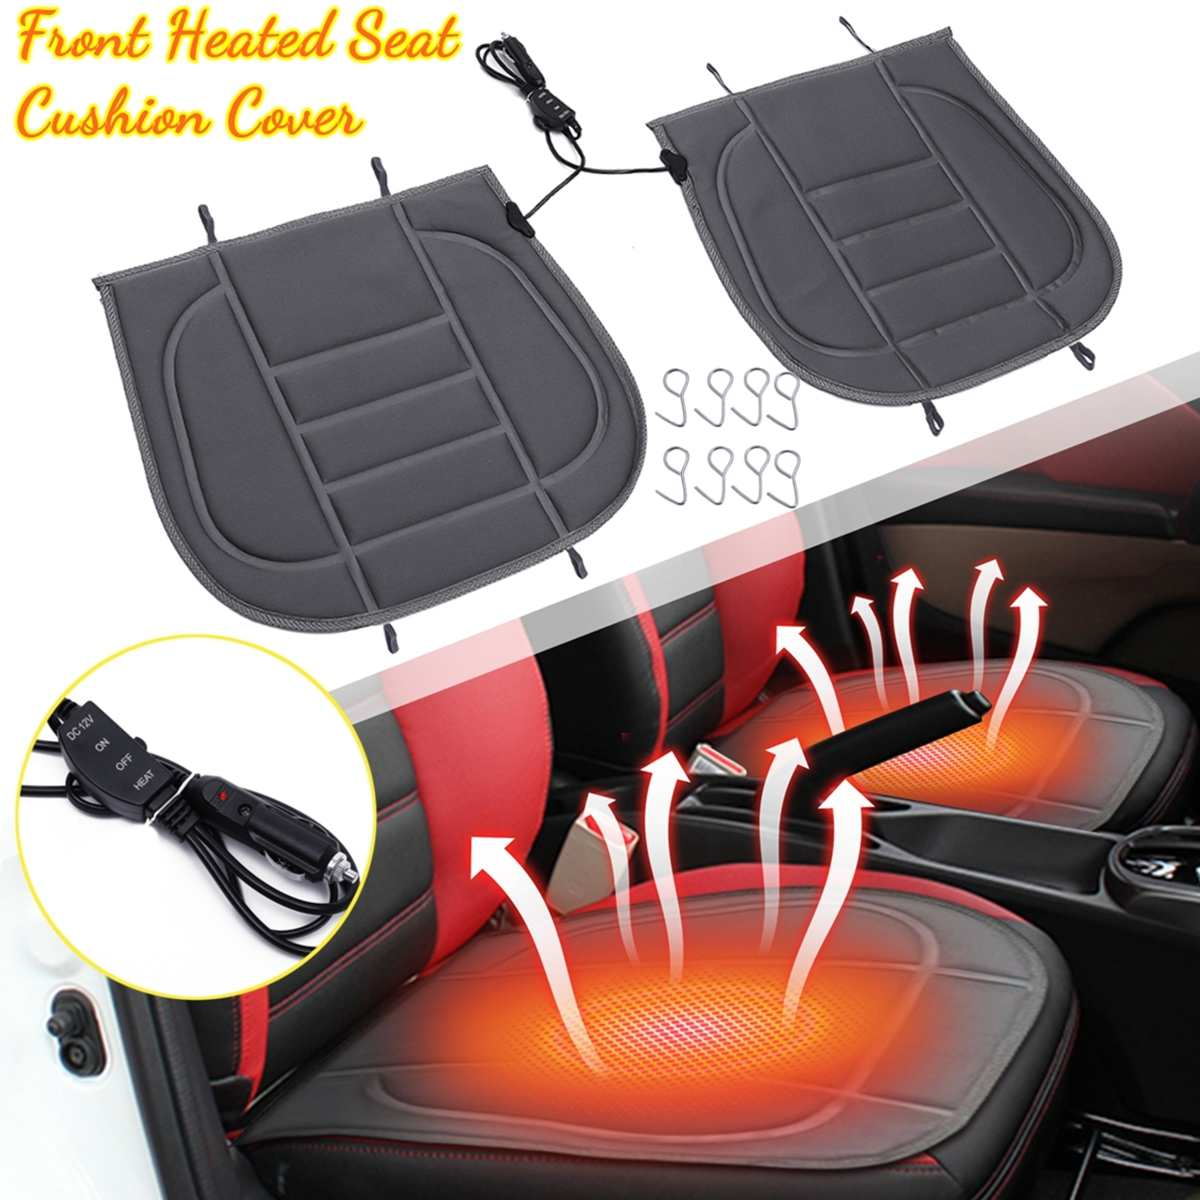 Cushion Car-Heated-Seat-Covers Heating-Pads Universal Front/rear Winter 12V for Double-Car